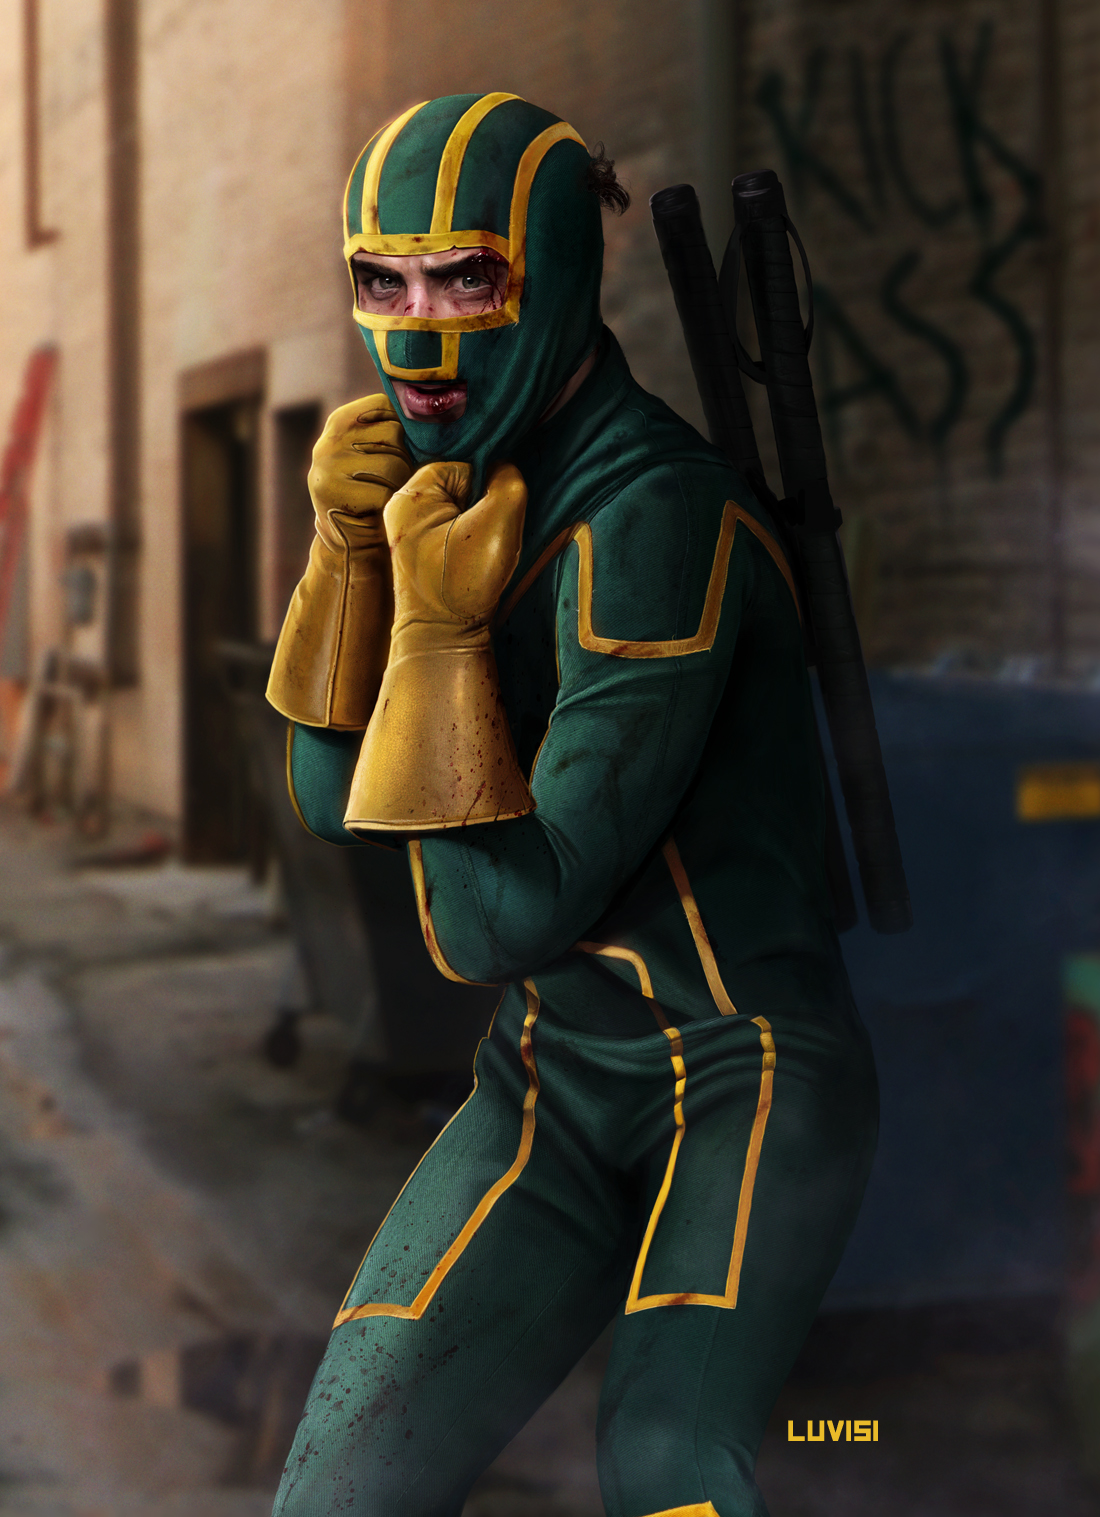 Love Wallpaper Kickass : KIcK-ASS - by DanLuVisiArt on DeviantArt